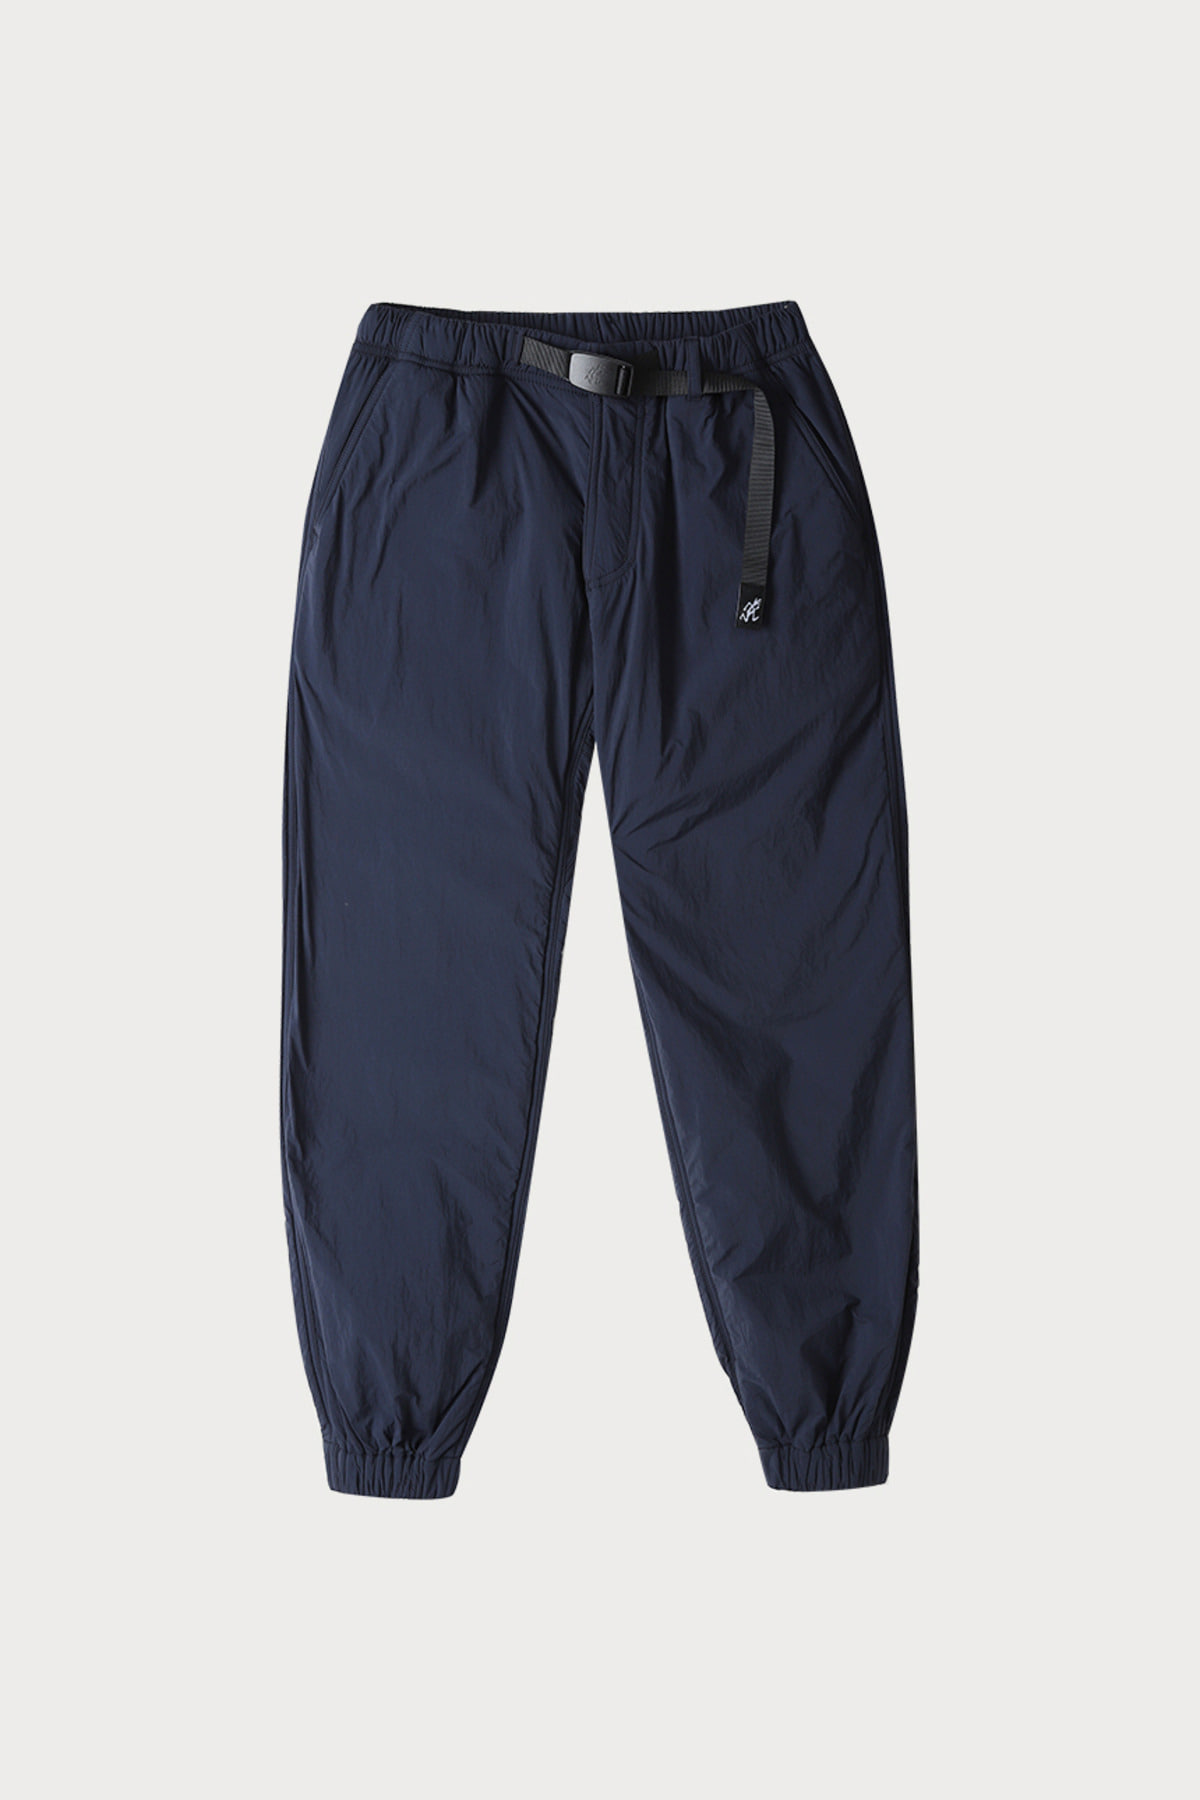 NYLON FLEECE PANTS DOUBLE NAVY